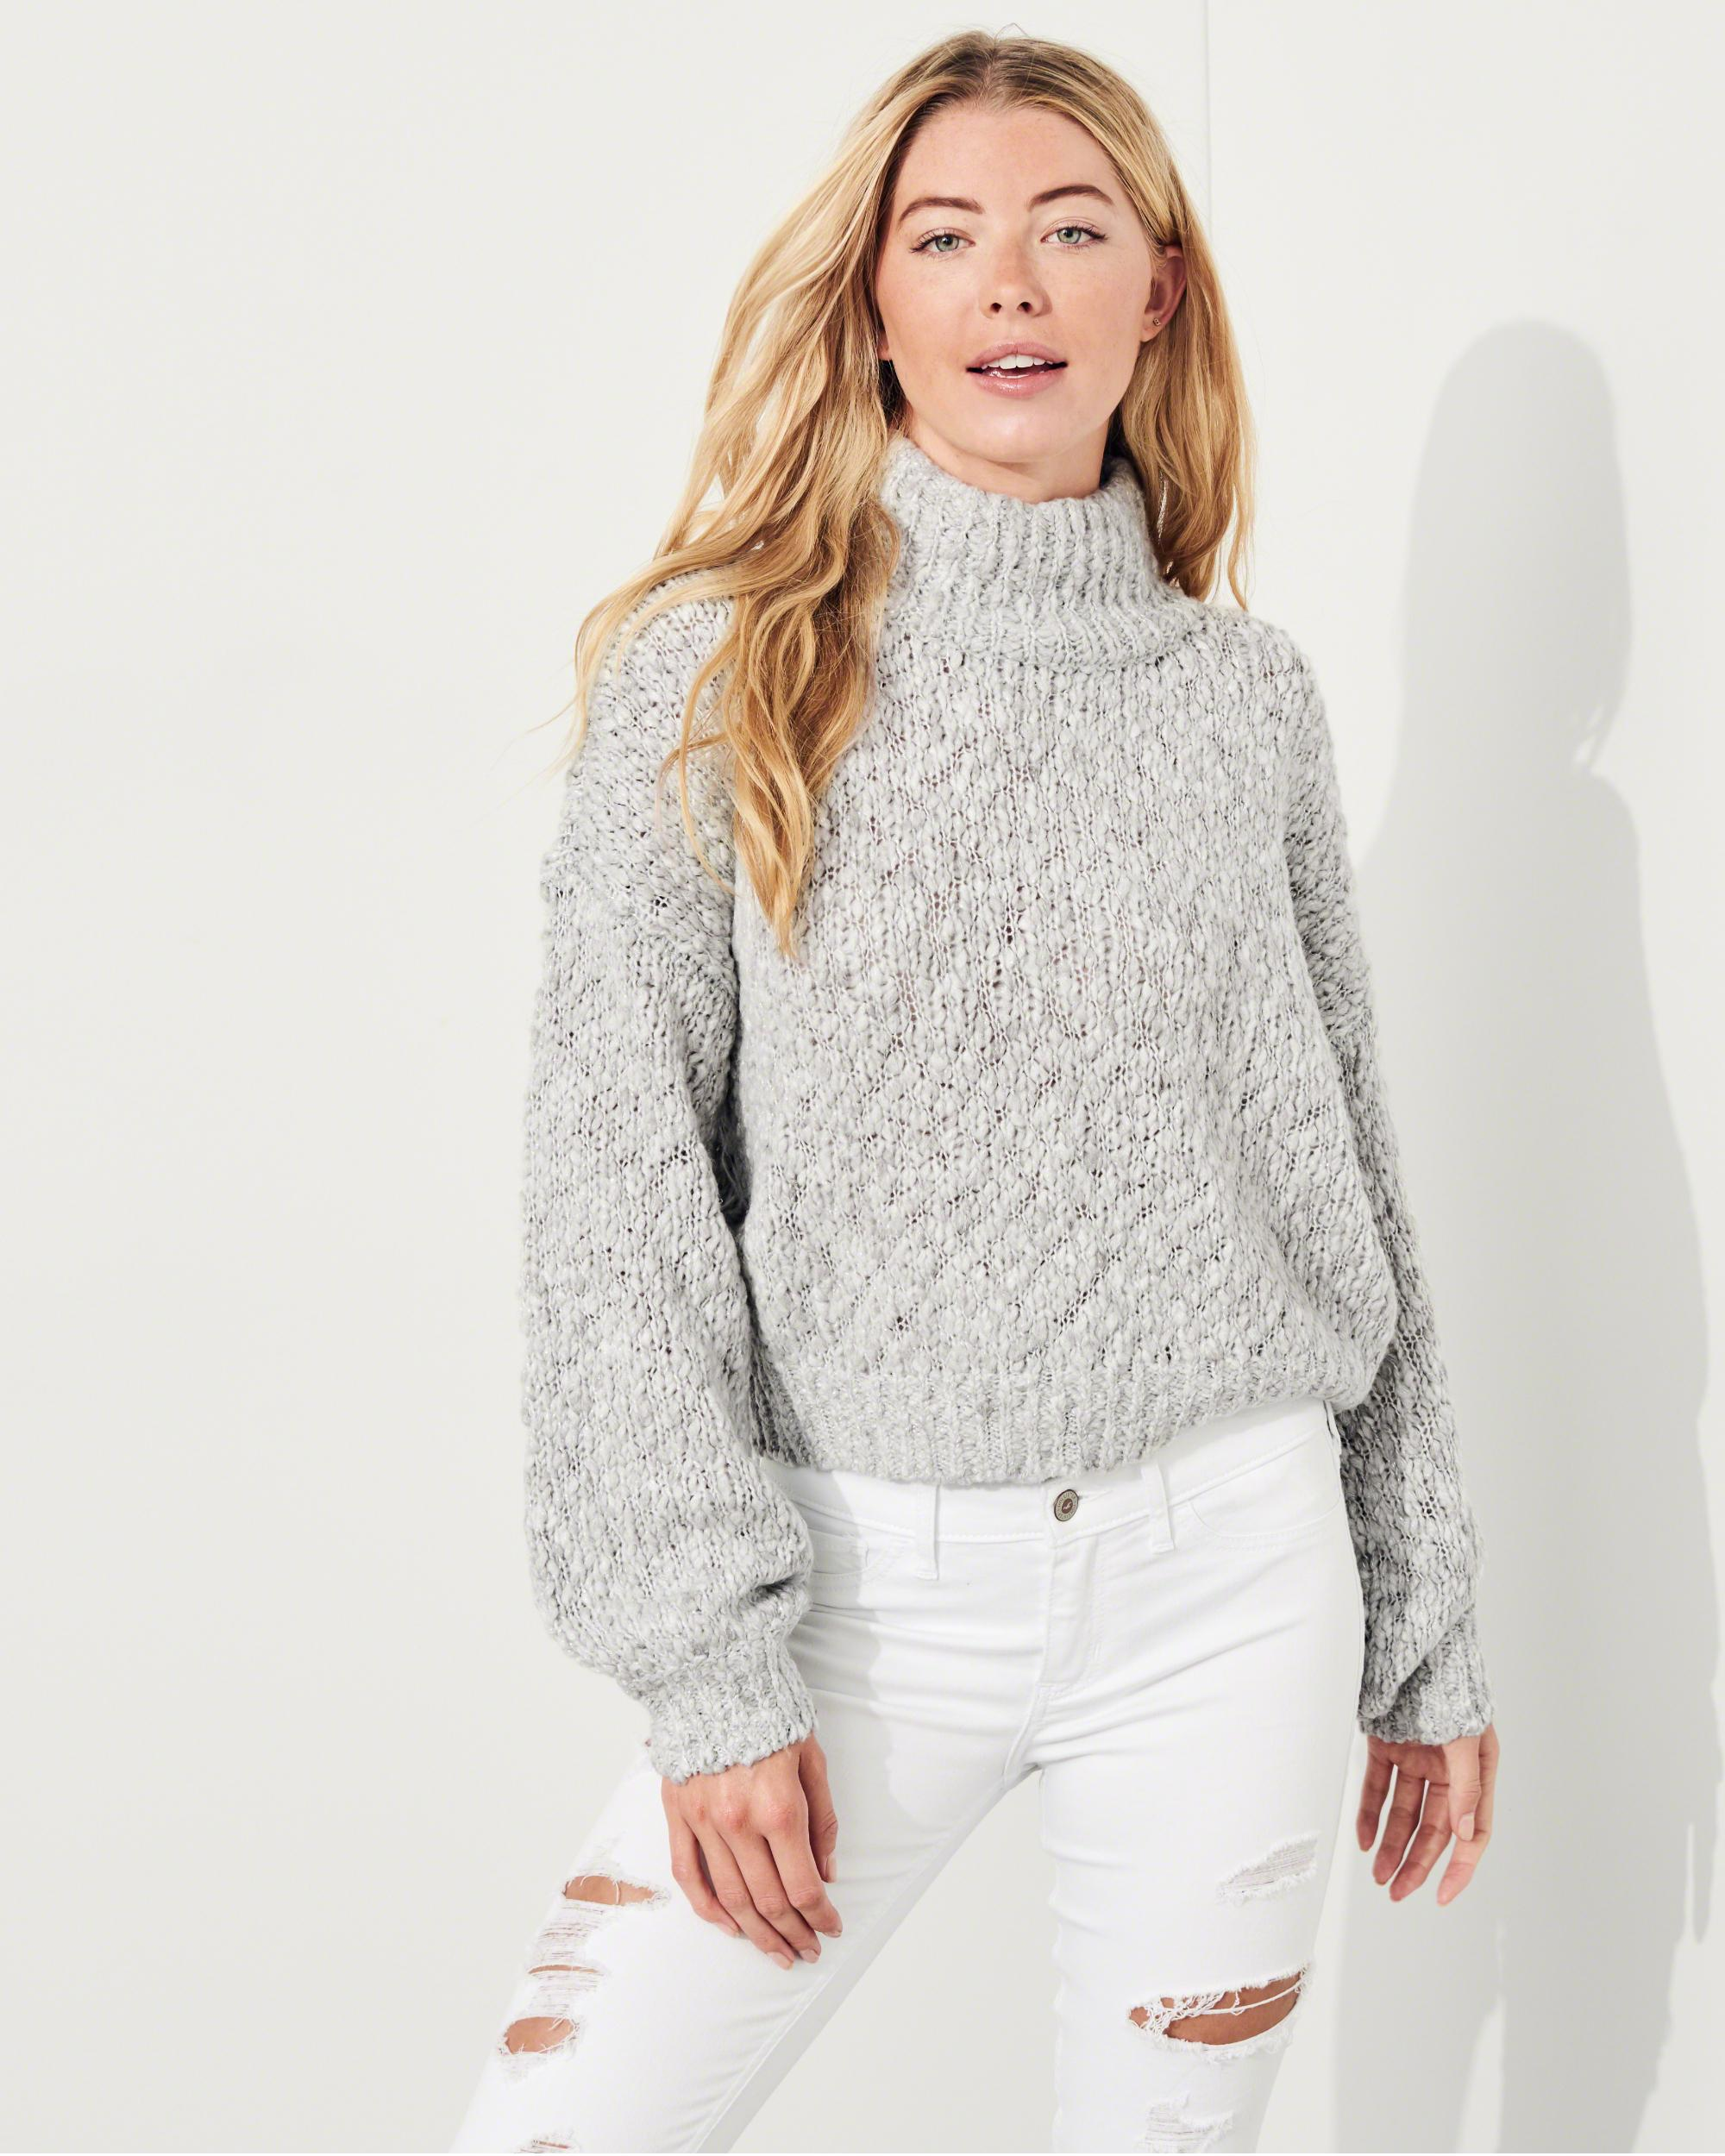 Hollister Shine Chunky Turtleneck Sweater in Gray - Save 62% | Lyst